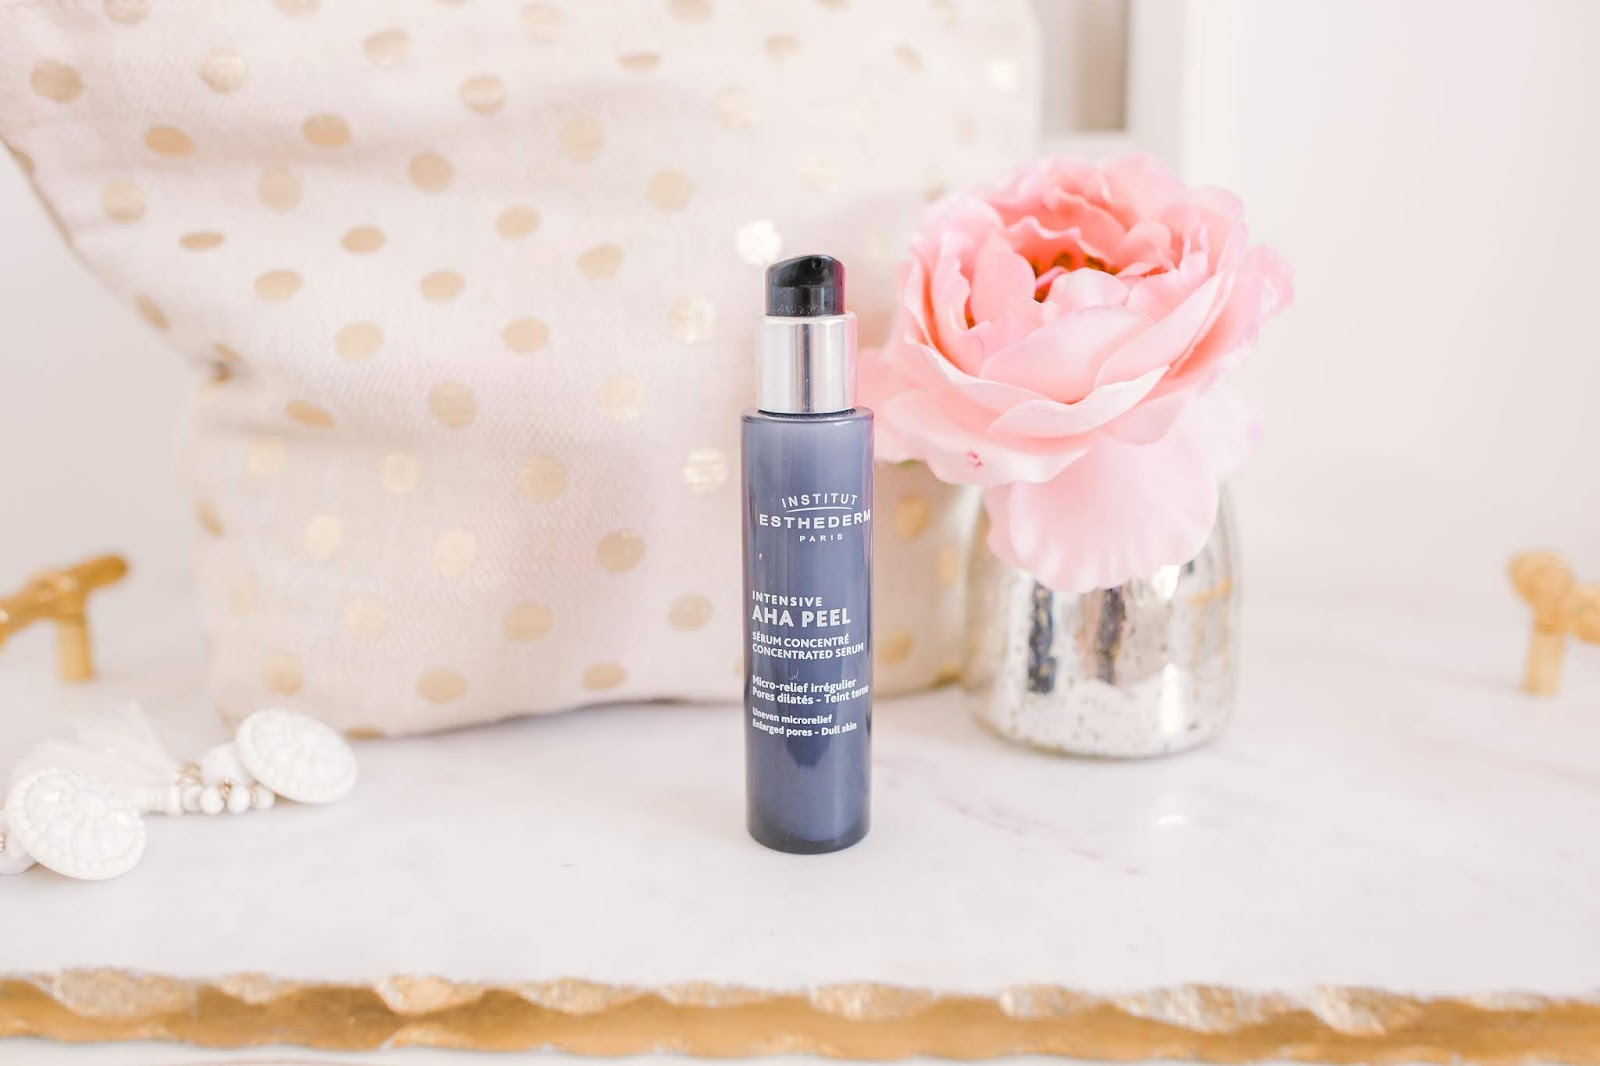 Bijuleni - 5  Products I use to Maintain My Skin Clear of Acne - Intensive Aha Peel Concentrated Serum Institut Esthederm